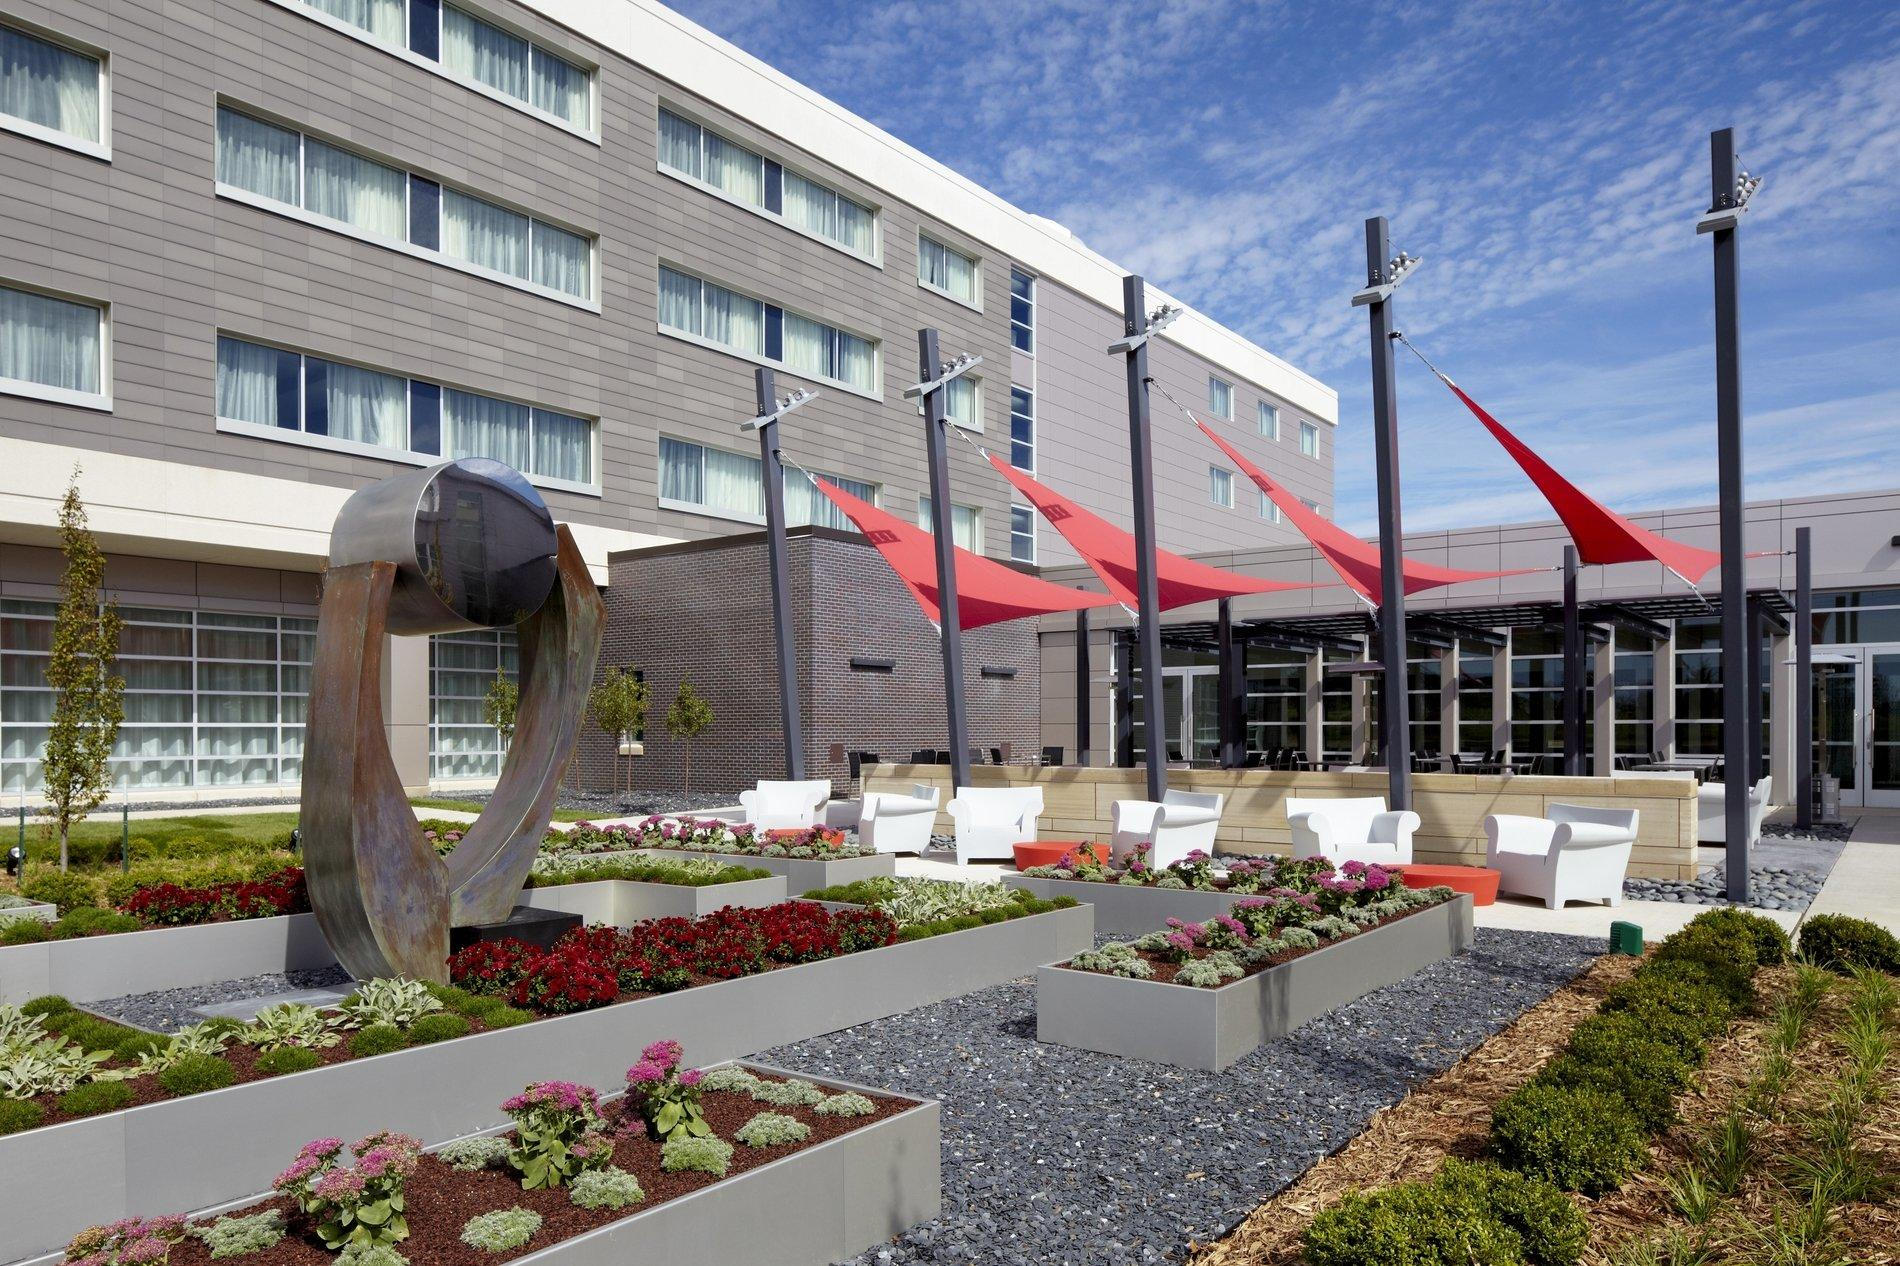 Hotel outdoor dining area and garden